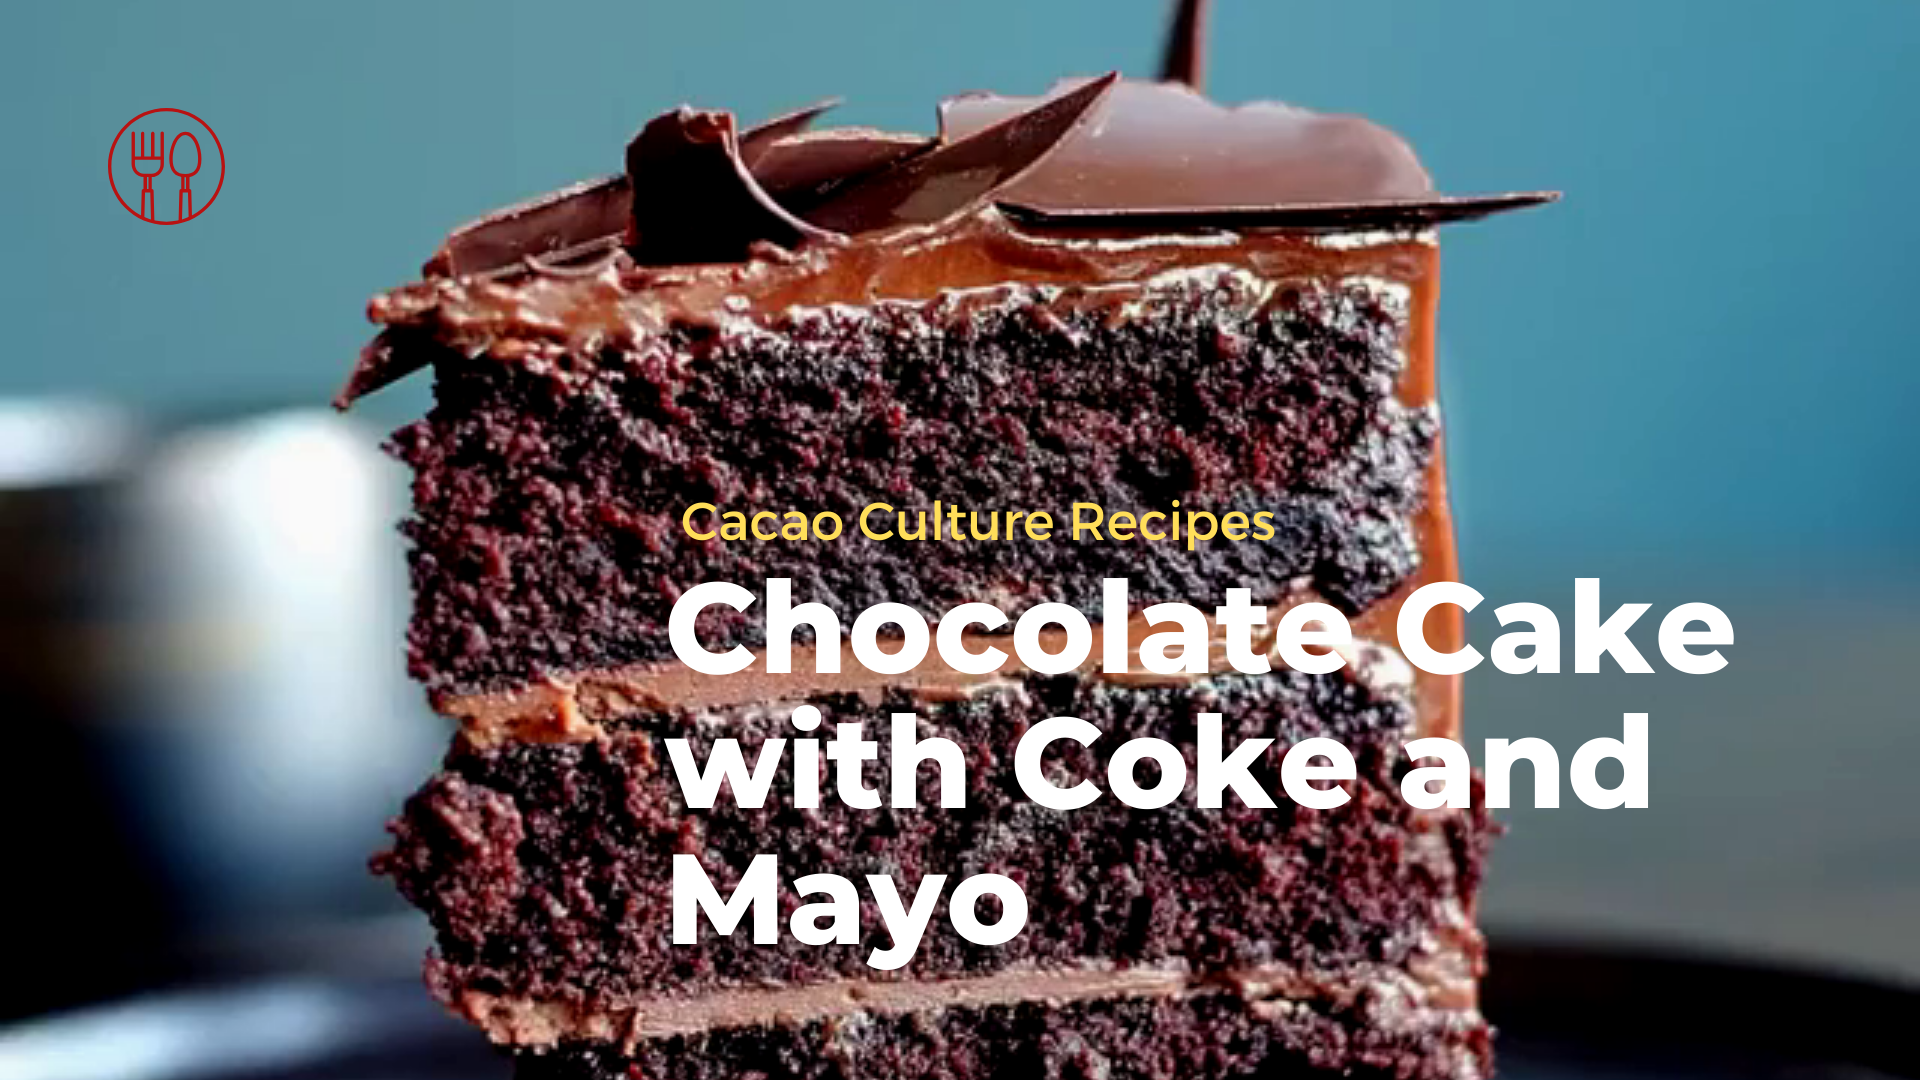 Chocolate Cake with Coke and Mayo | Cacao Culture Recipes